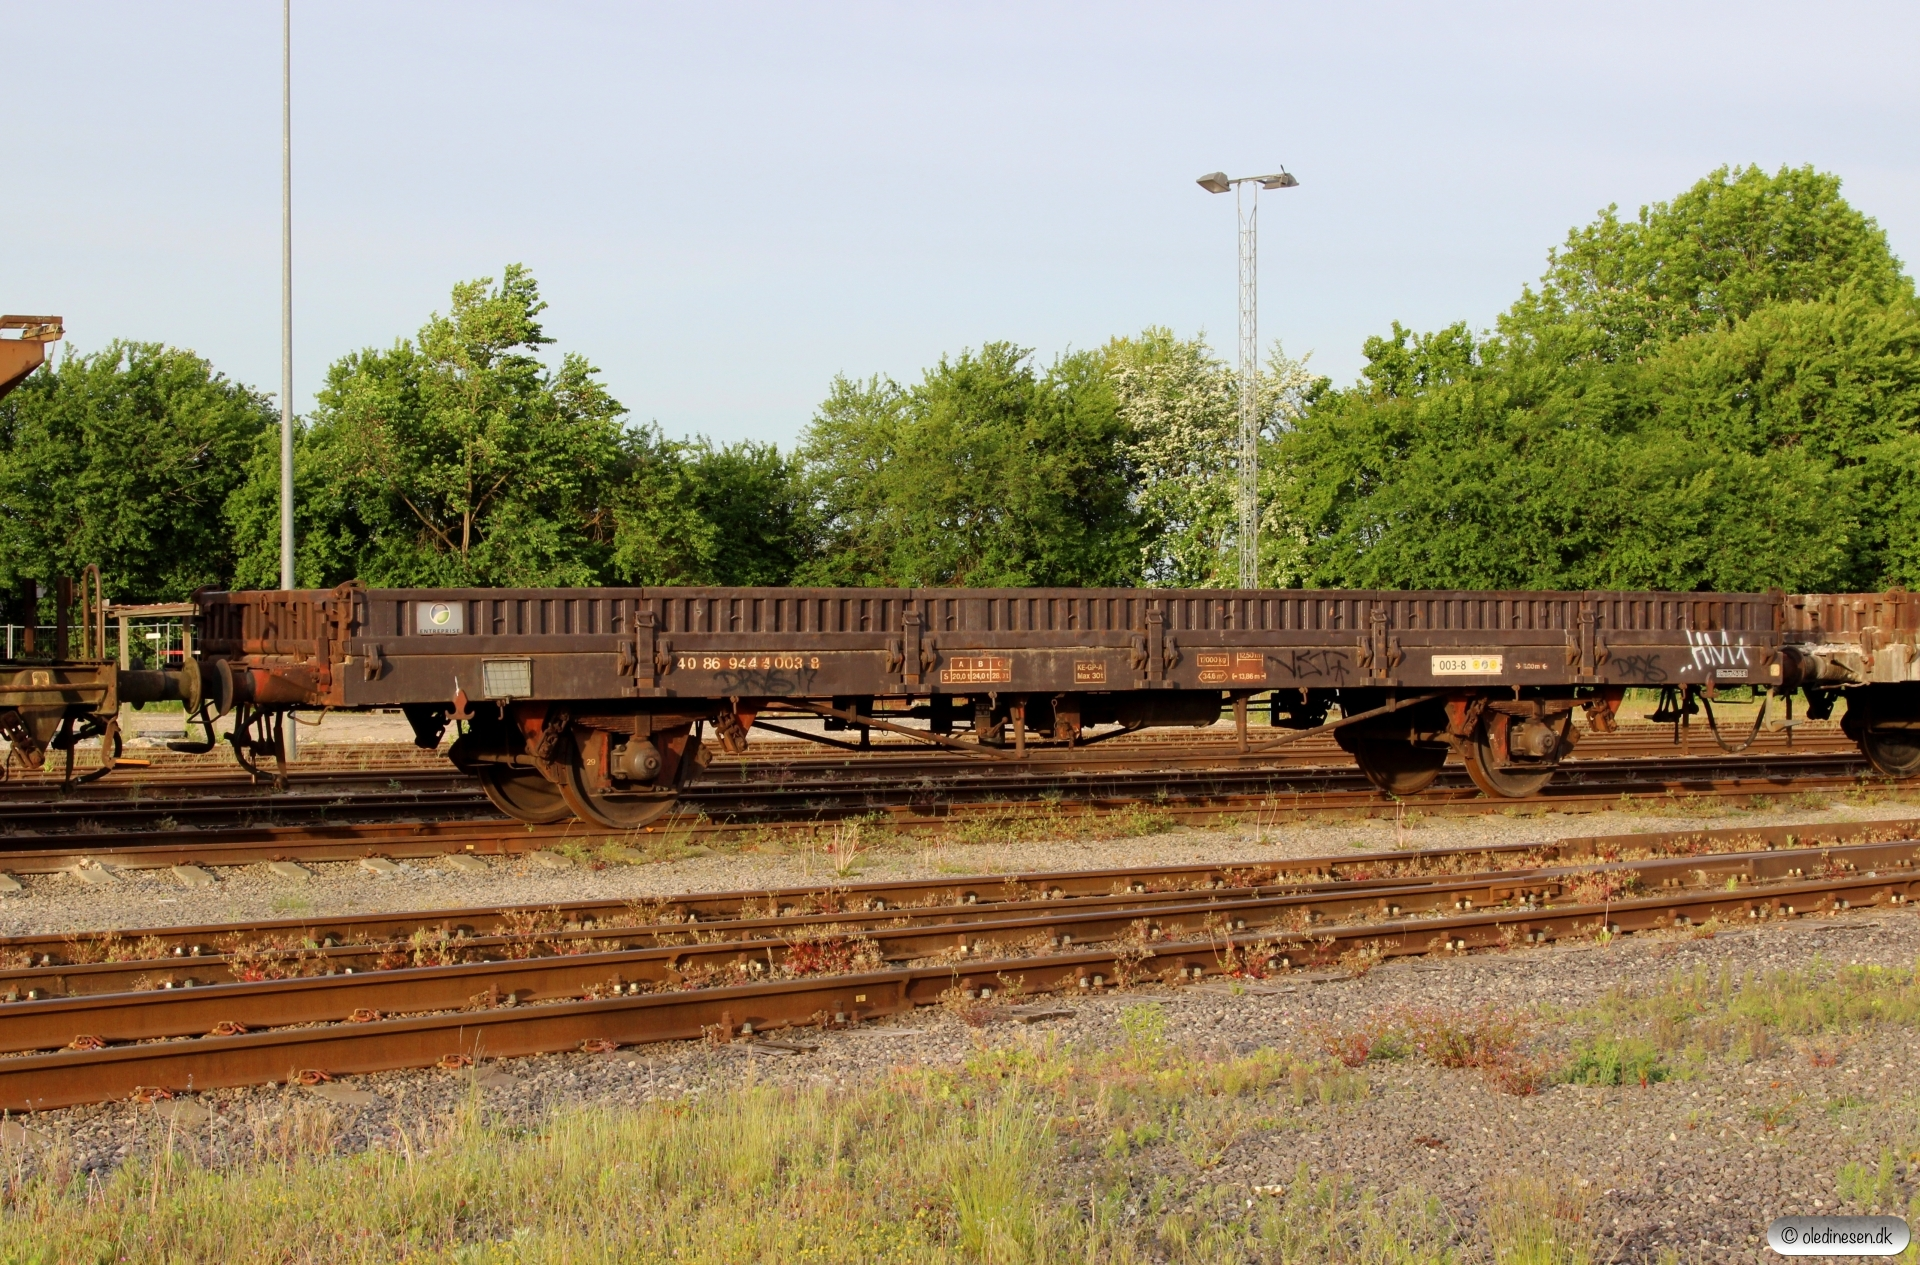 ENT 40 86 944 4 003-8. Ringsted 21.05.2018.